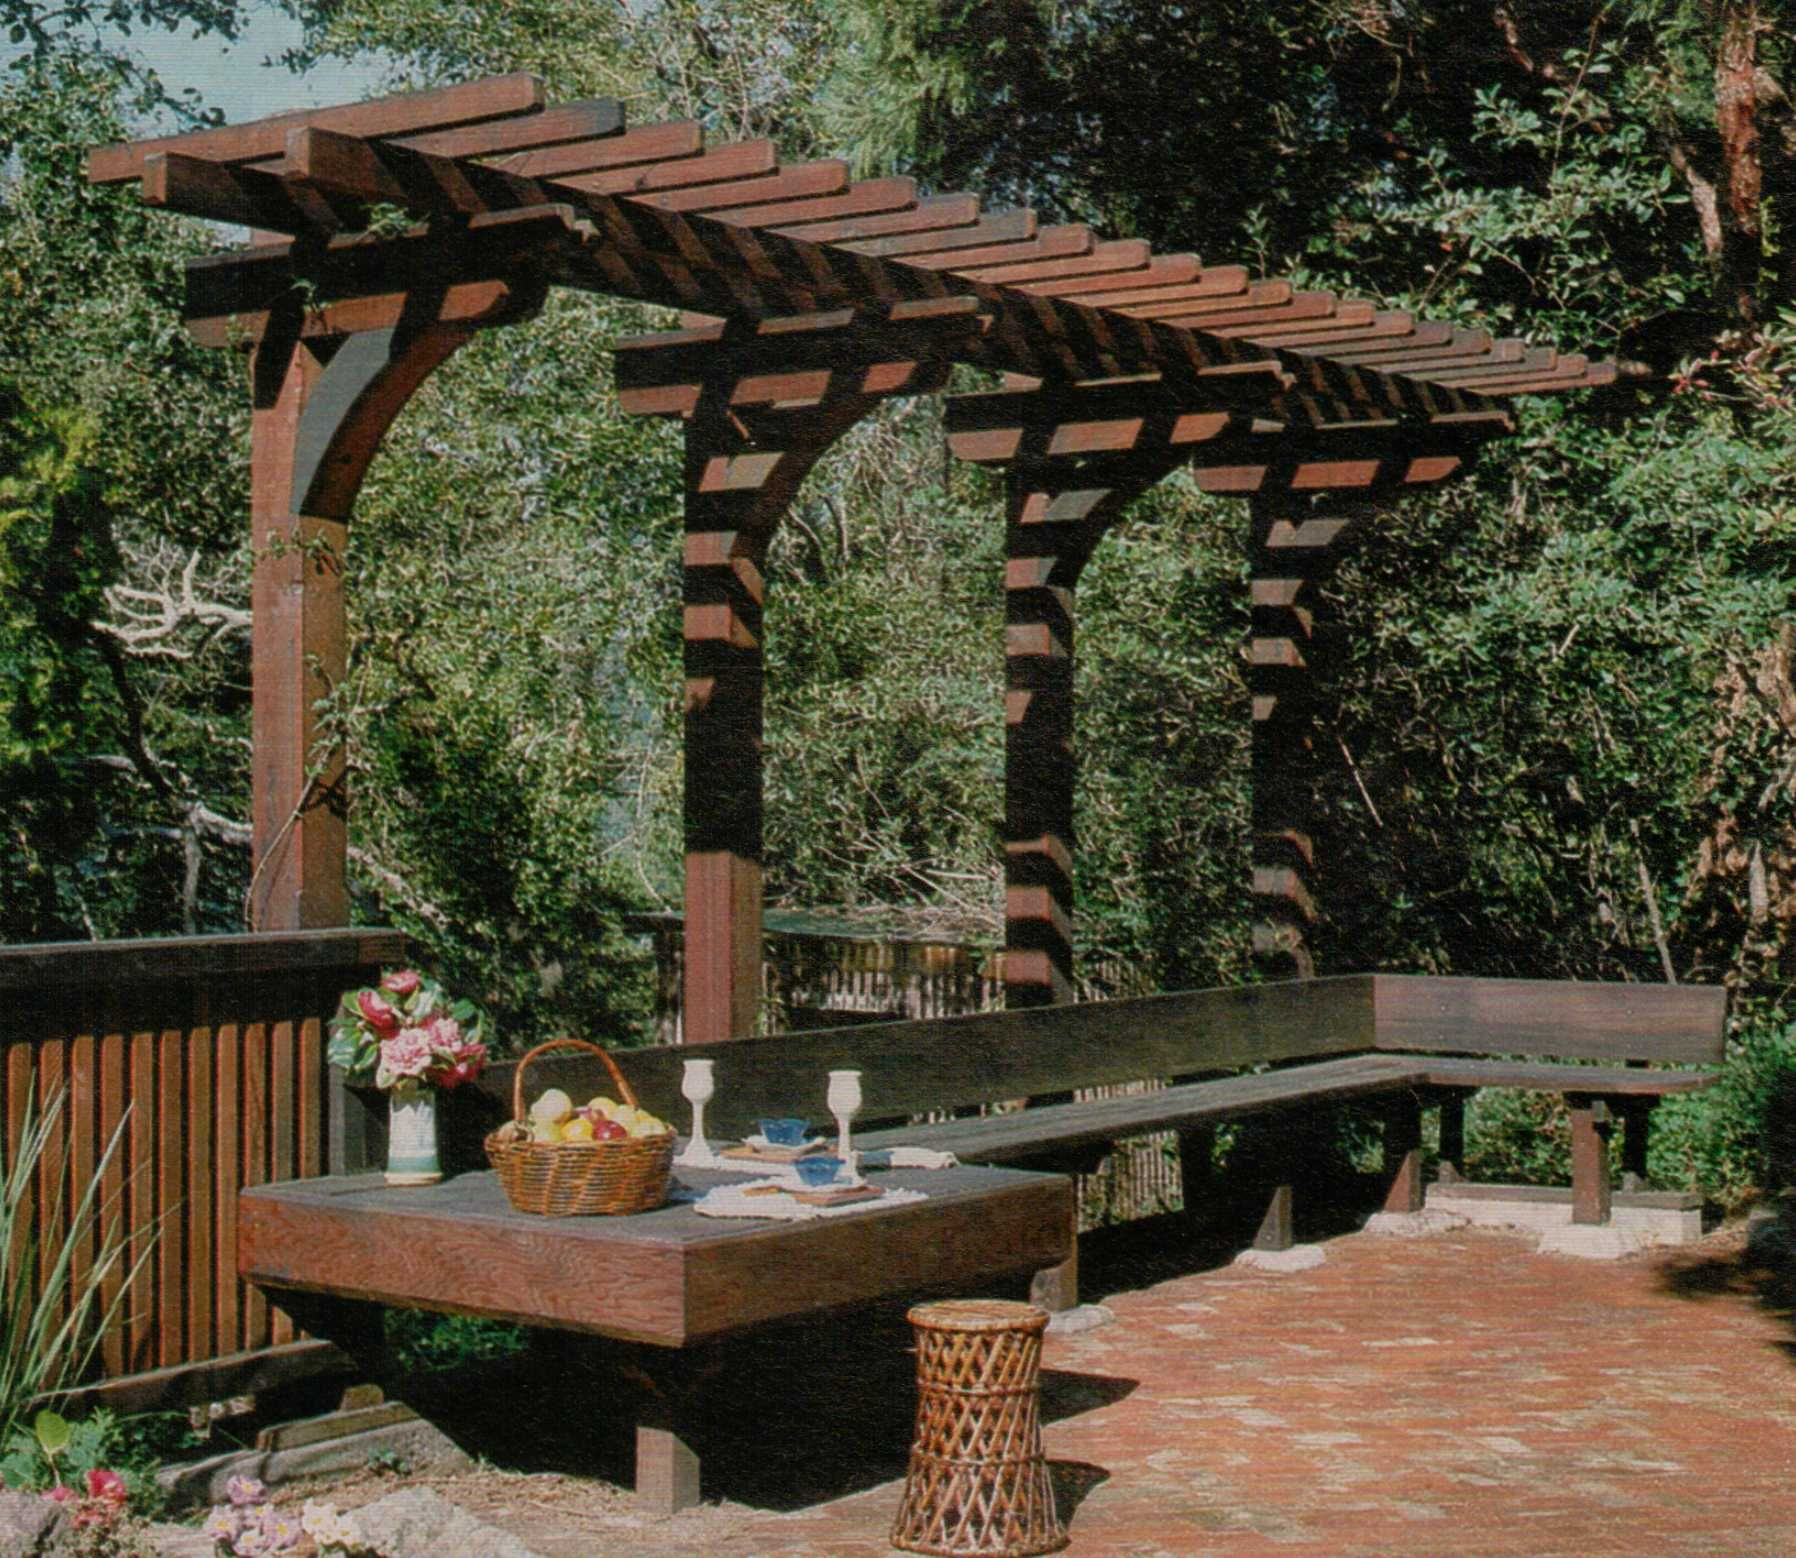 Overhang Pergola Nice Seating Area Repinned By